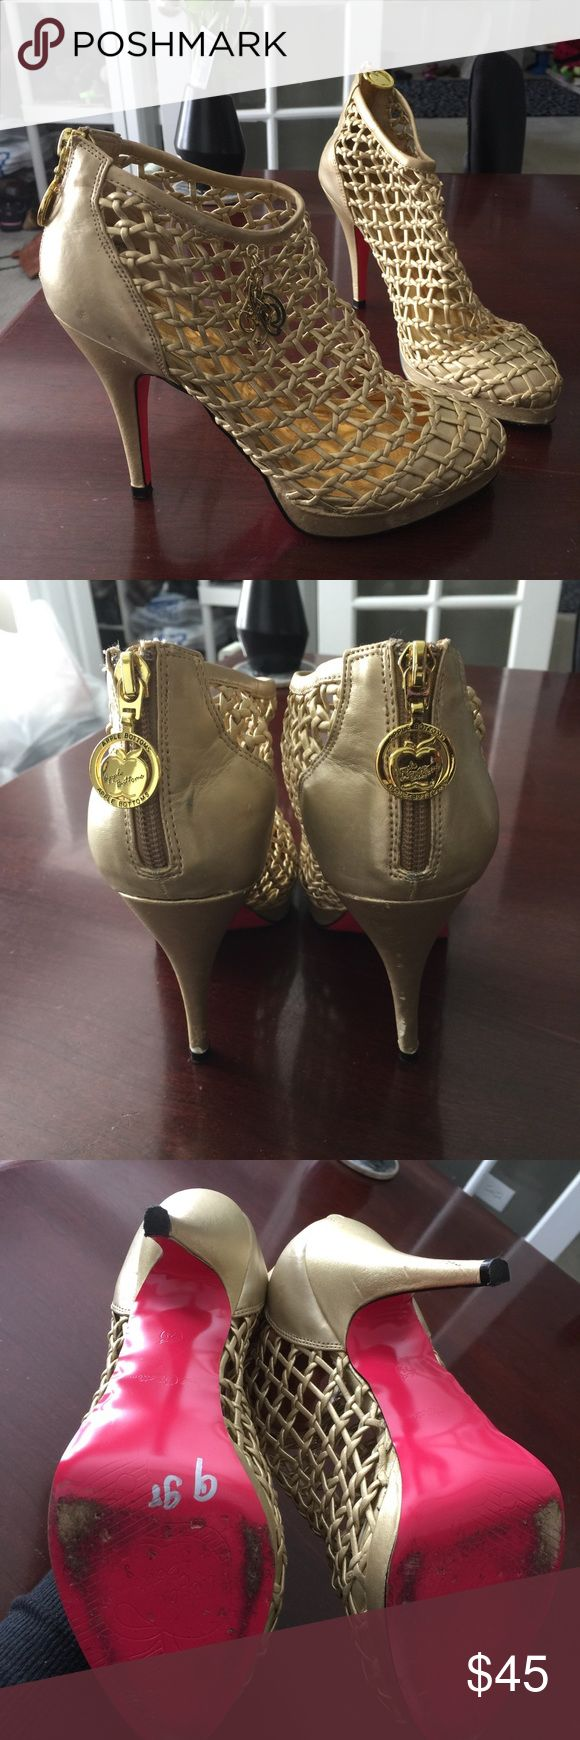 Apple bottom gold cage shoes 👠 Apple bottom brand gold cage heels! Apple Bottoms Shoes Heels